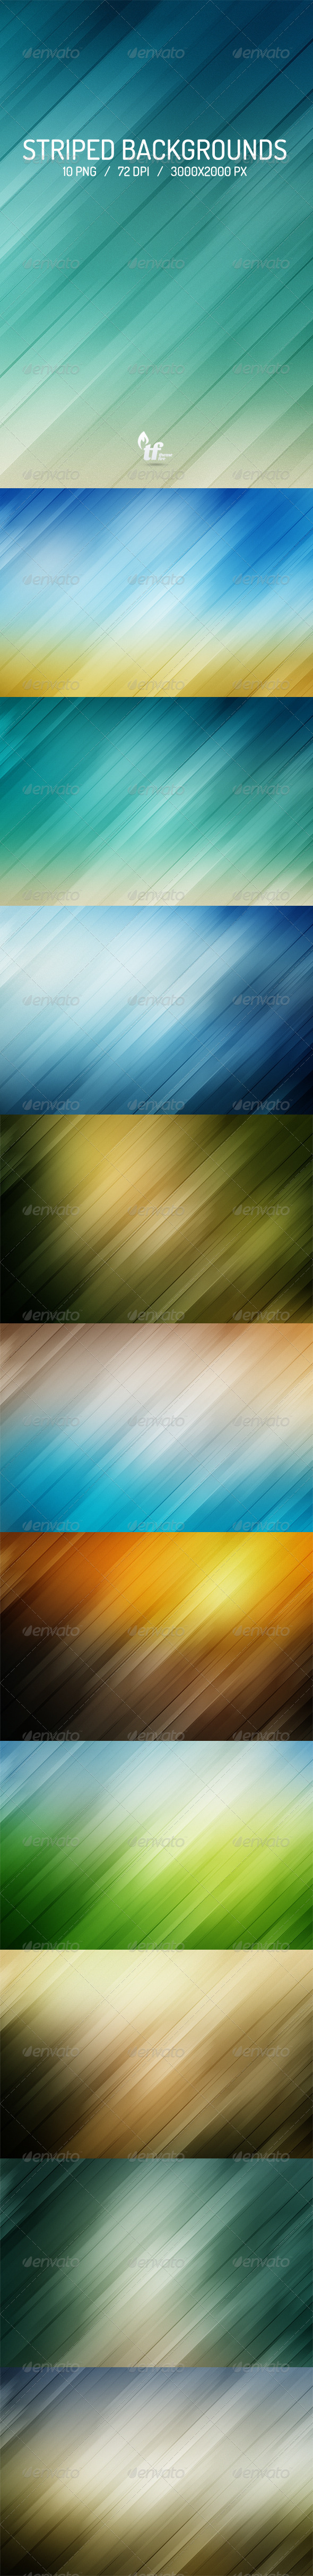 GraphicRiver Striped Backgrounds 7229020